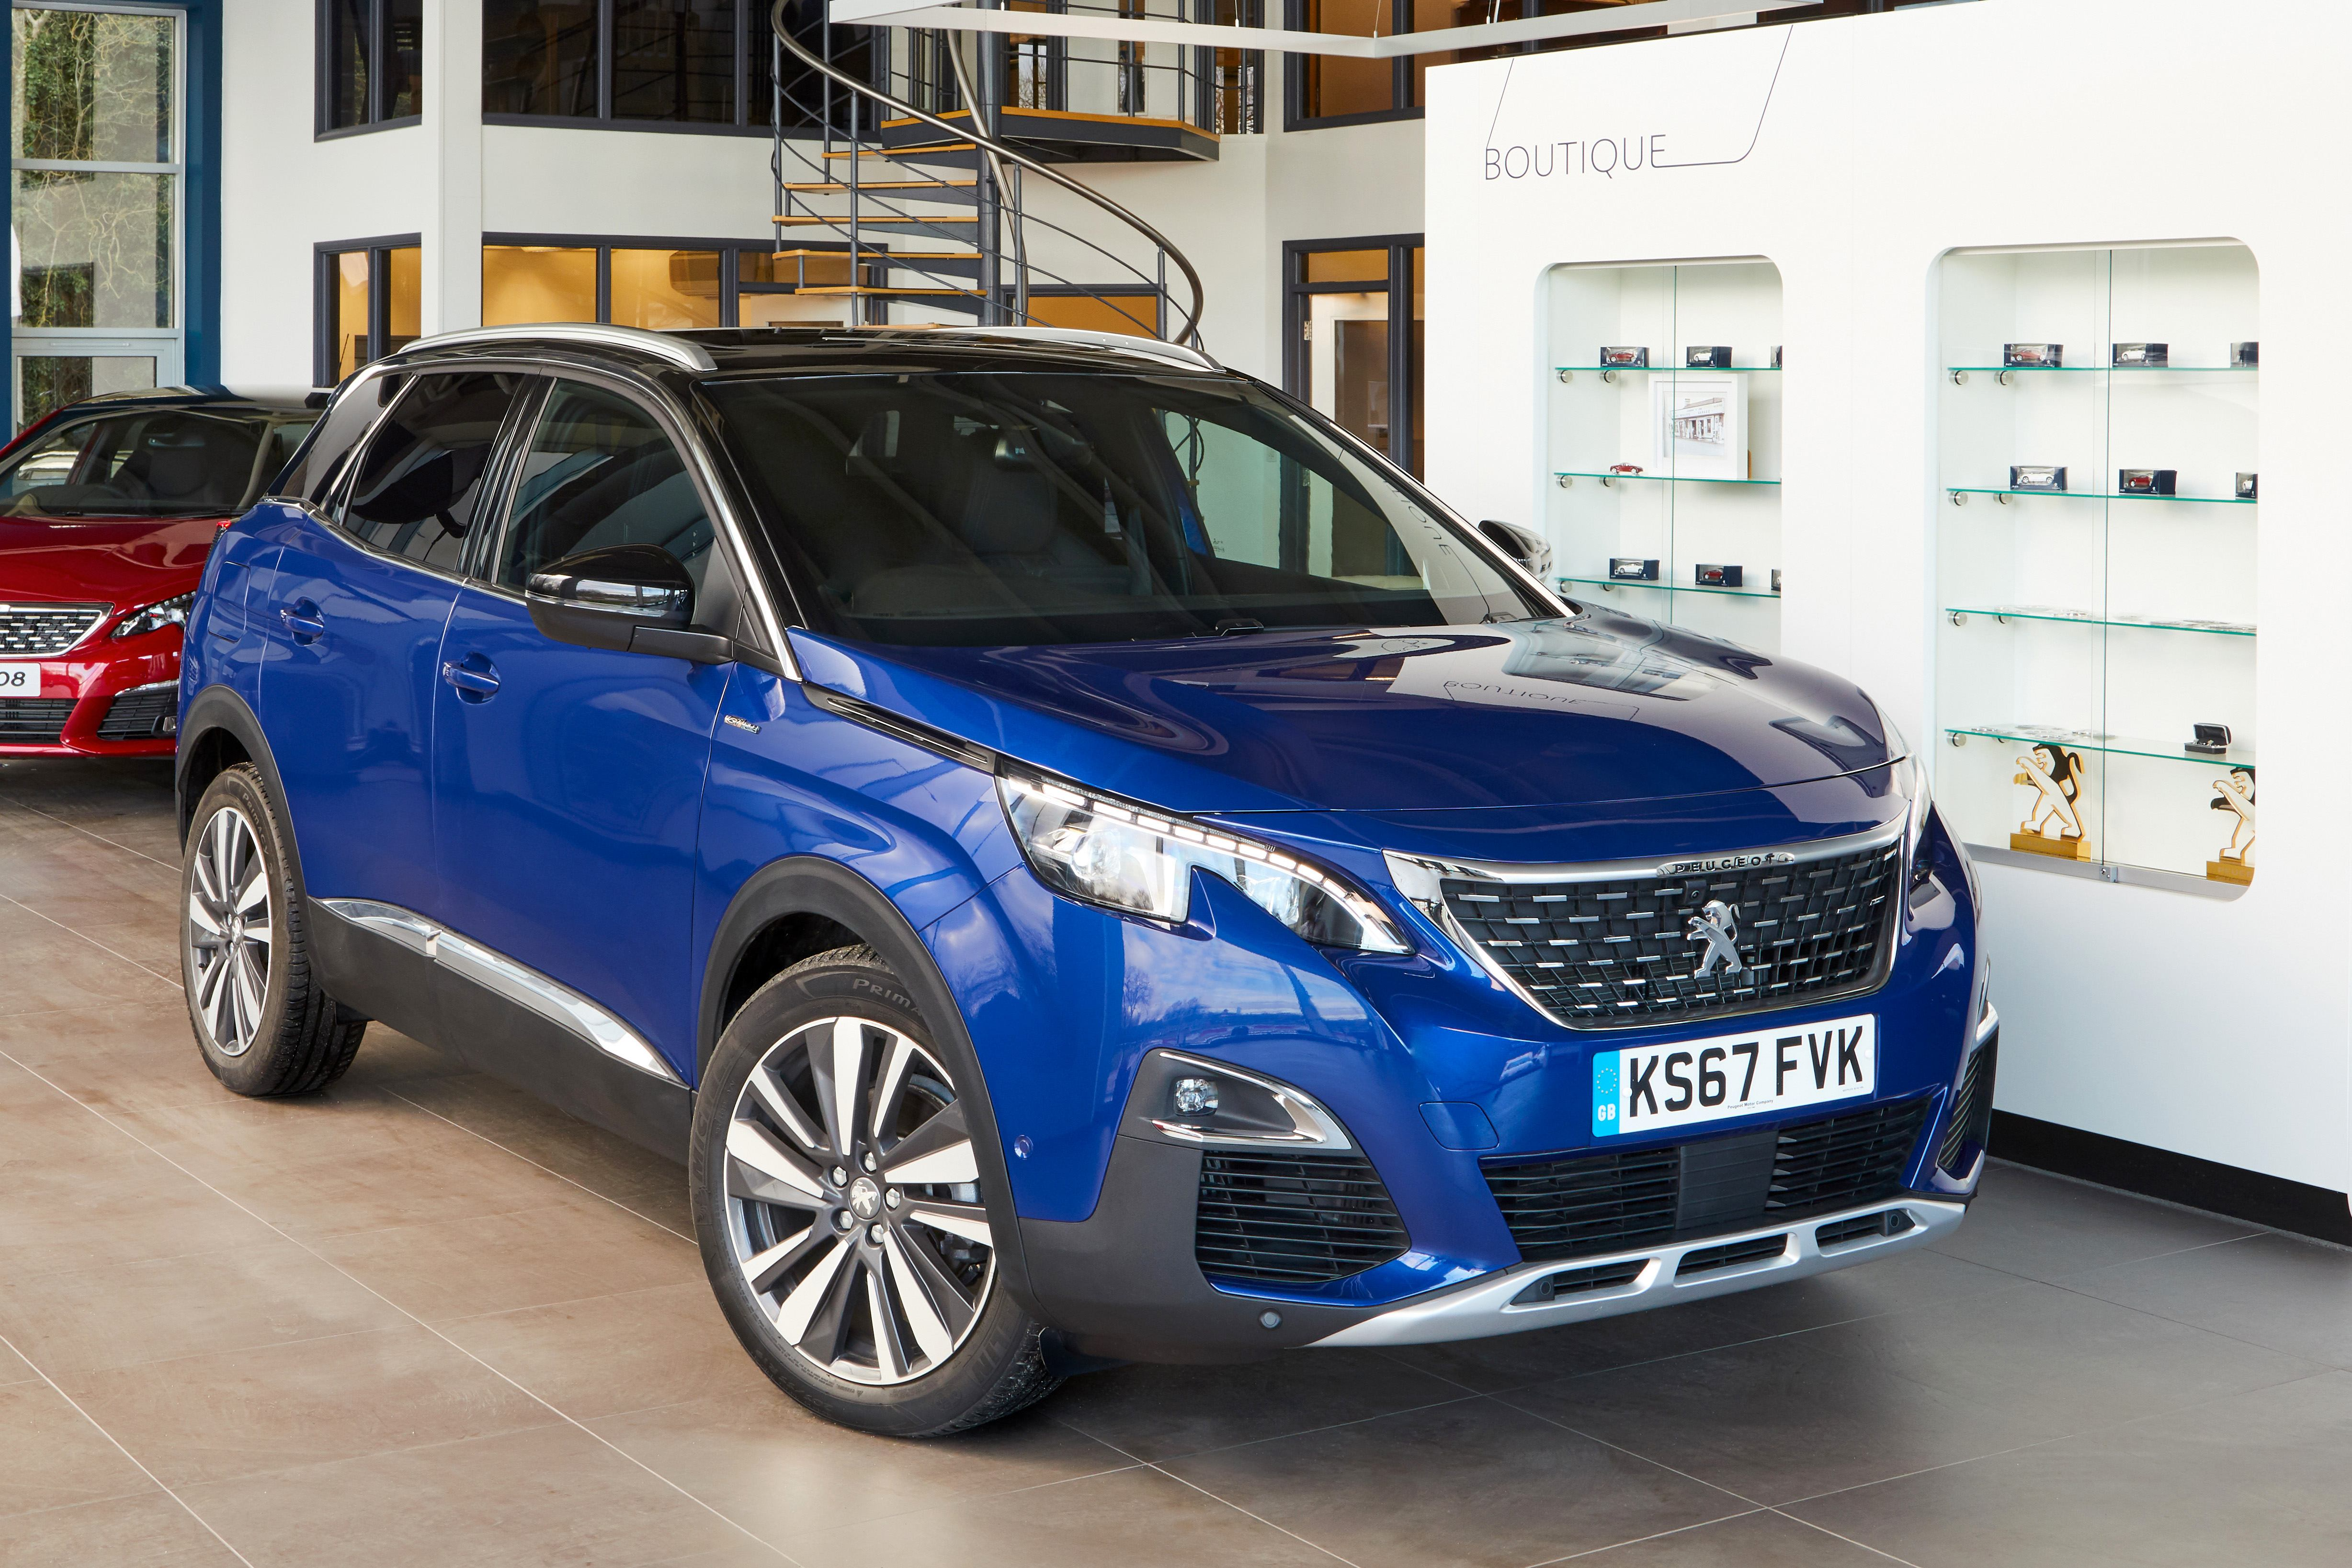 Large -14205-Peugeot Makes Luxury Affordable On 3008And All -New 5008Suvs (1)